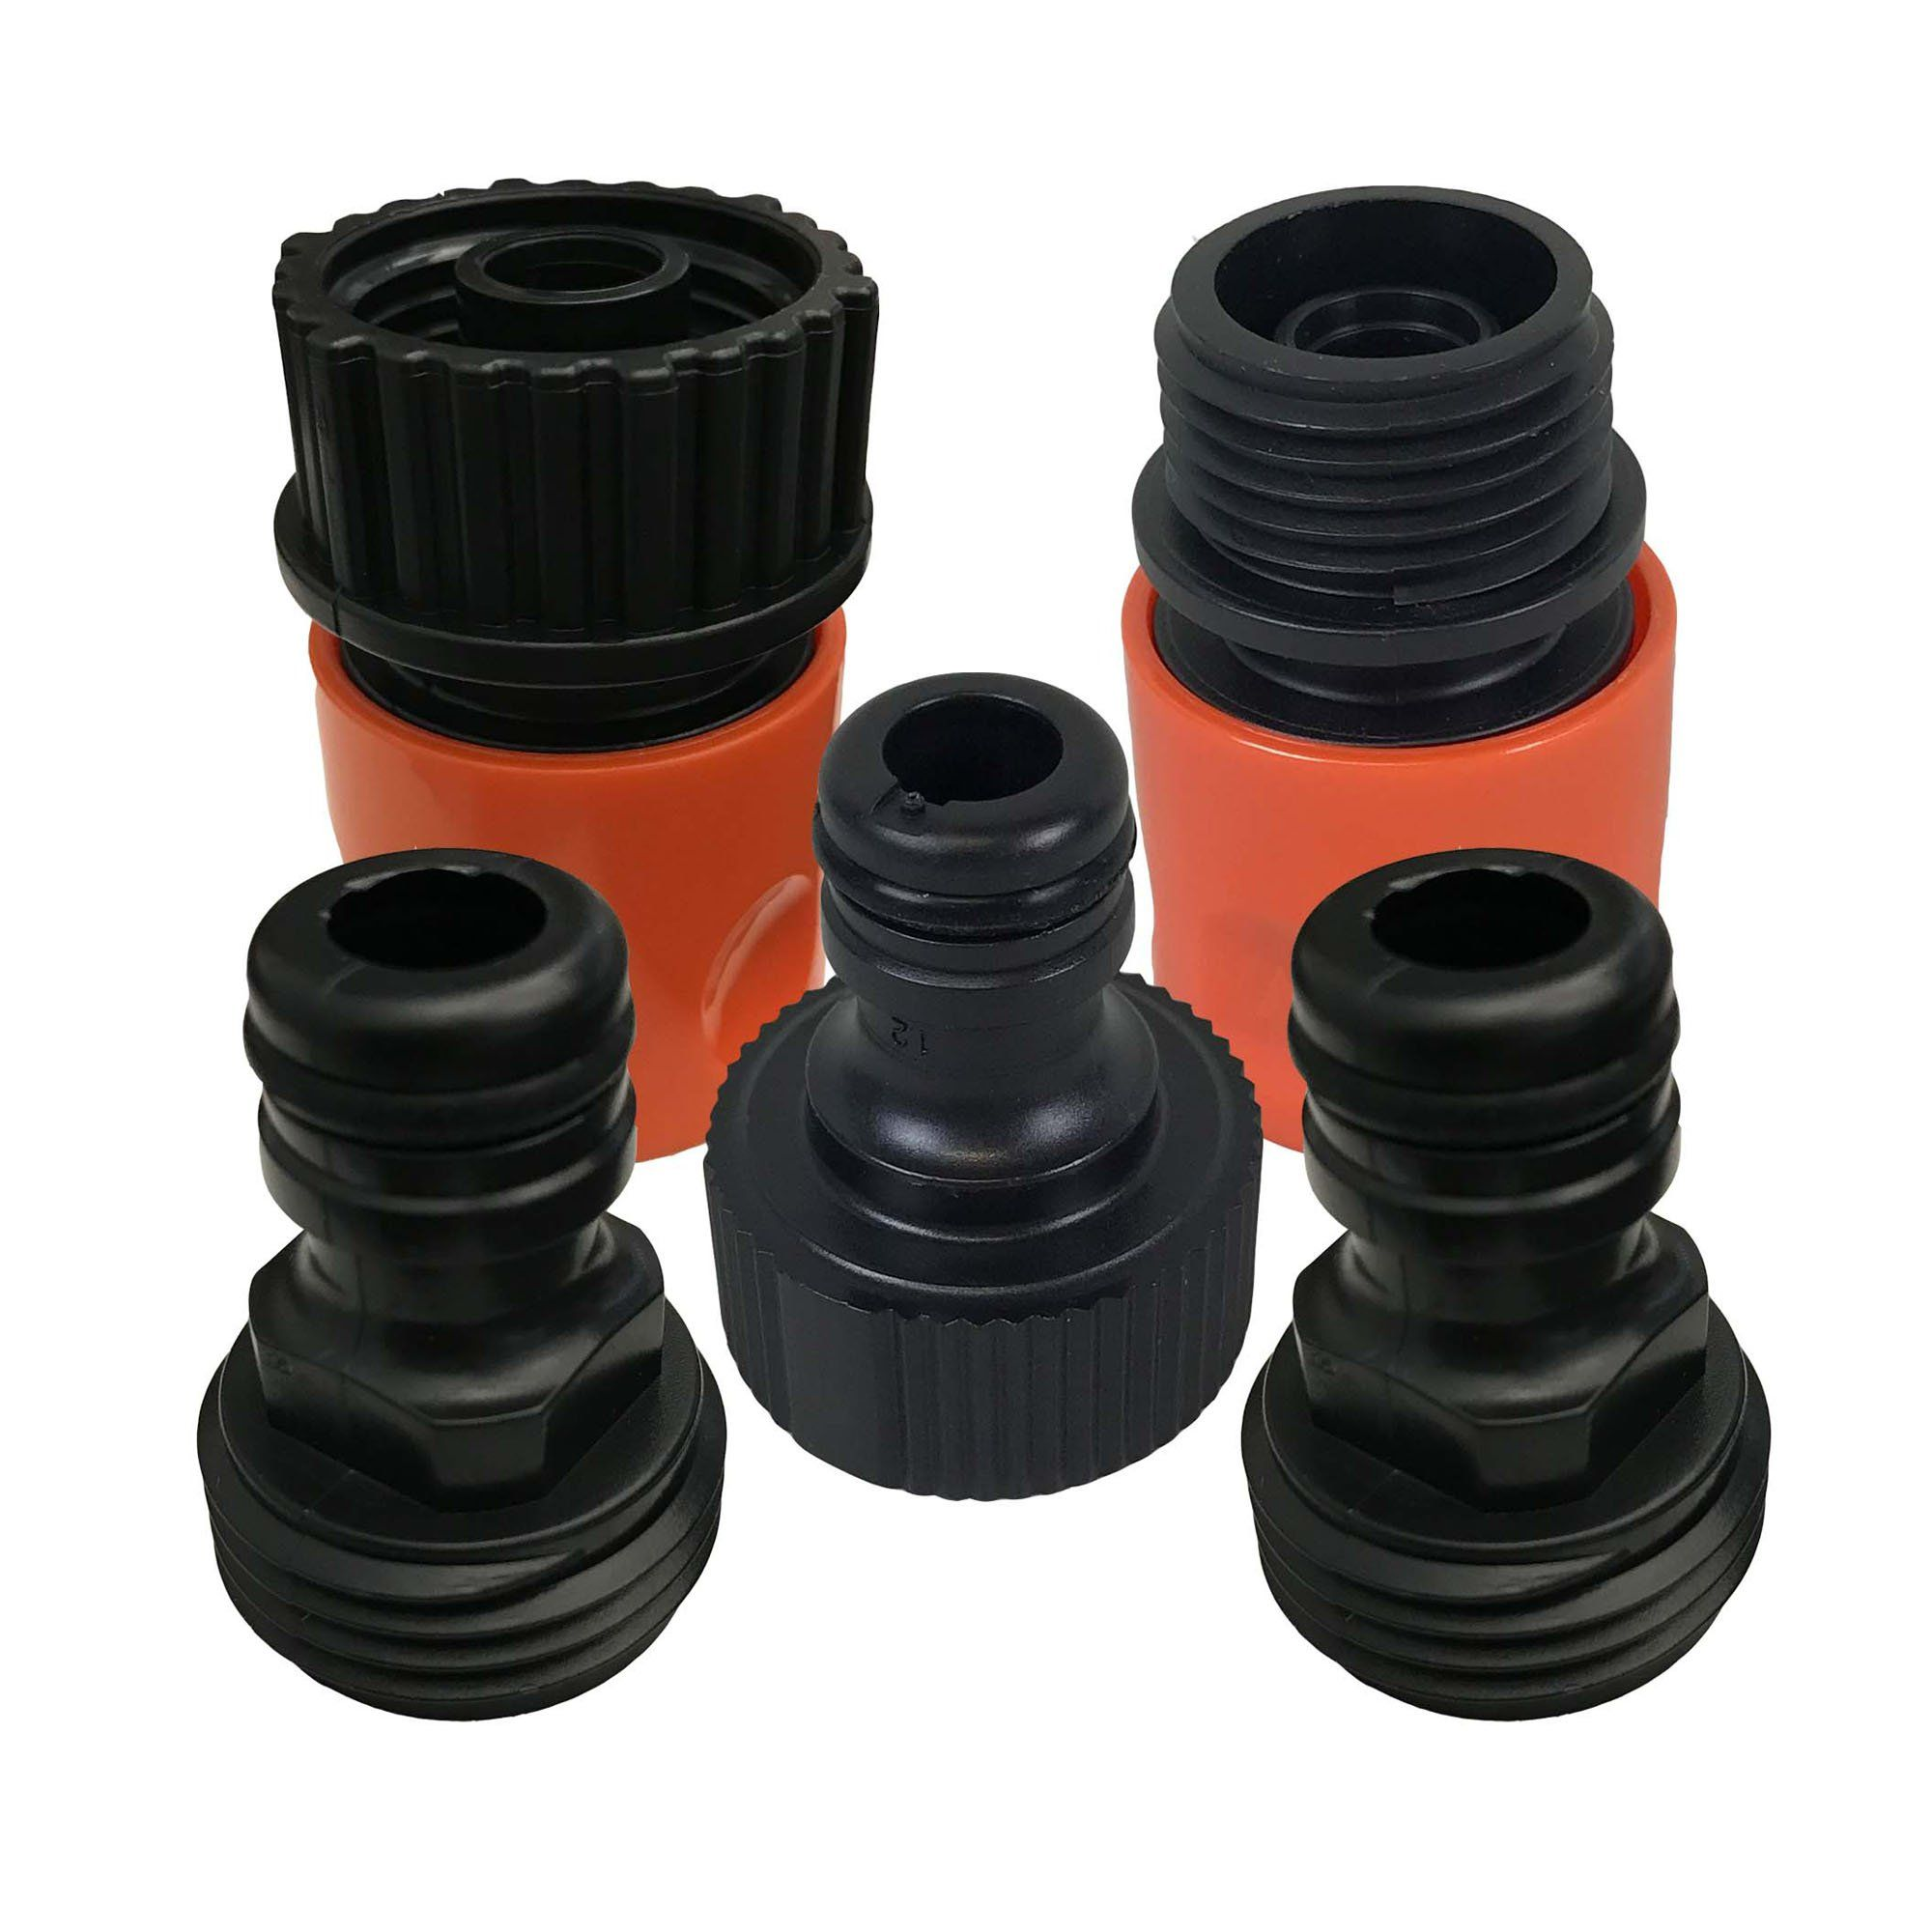 5PC Garden Hose Quick Connector Starter Set, Male & Female Adapters ...